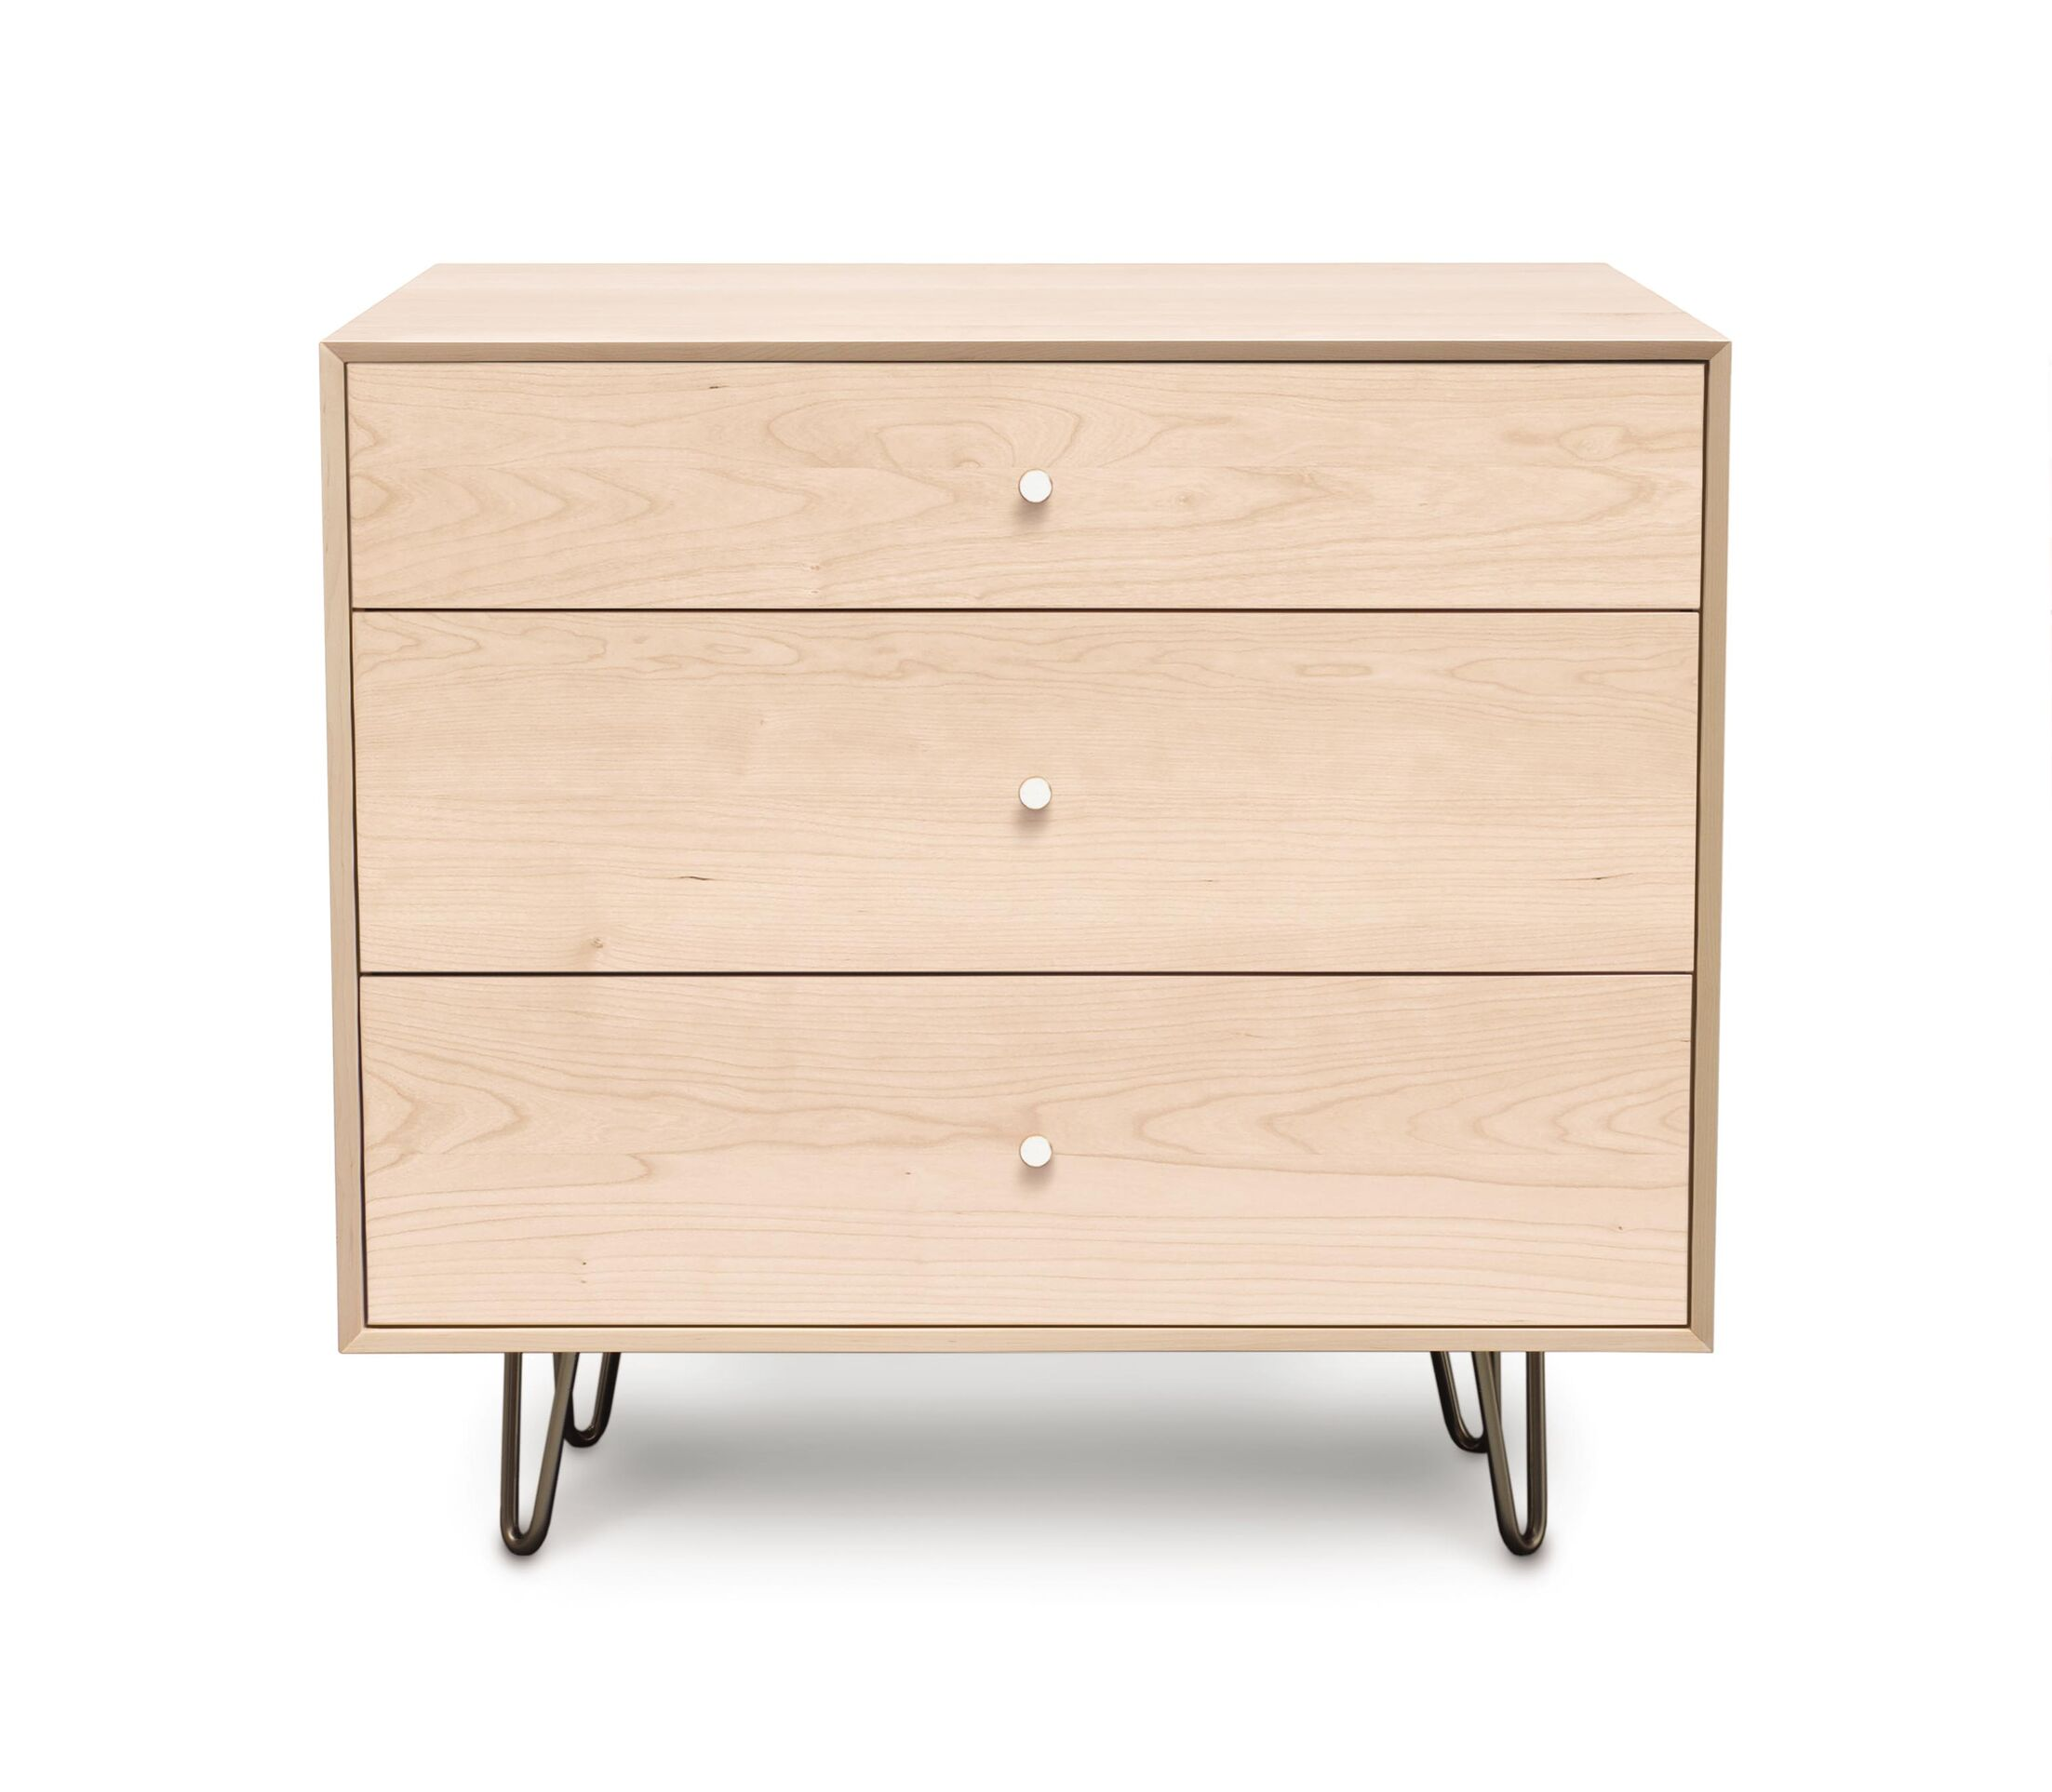 Canvas 3 Drawer Bachelor's Chest Color: Bright White Maple, Drawer Handle Design: Knob, Leg Material: Metal